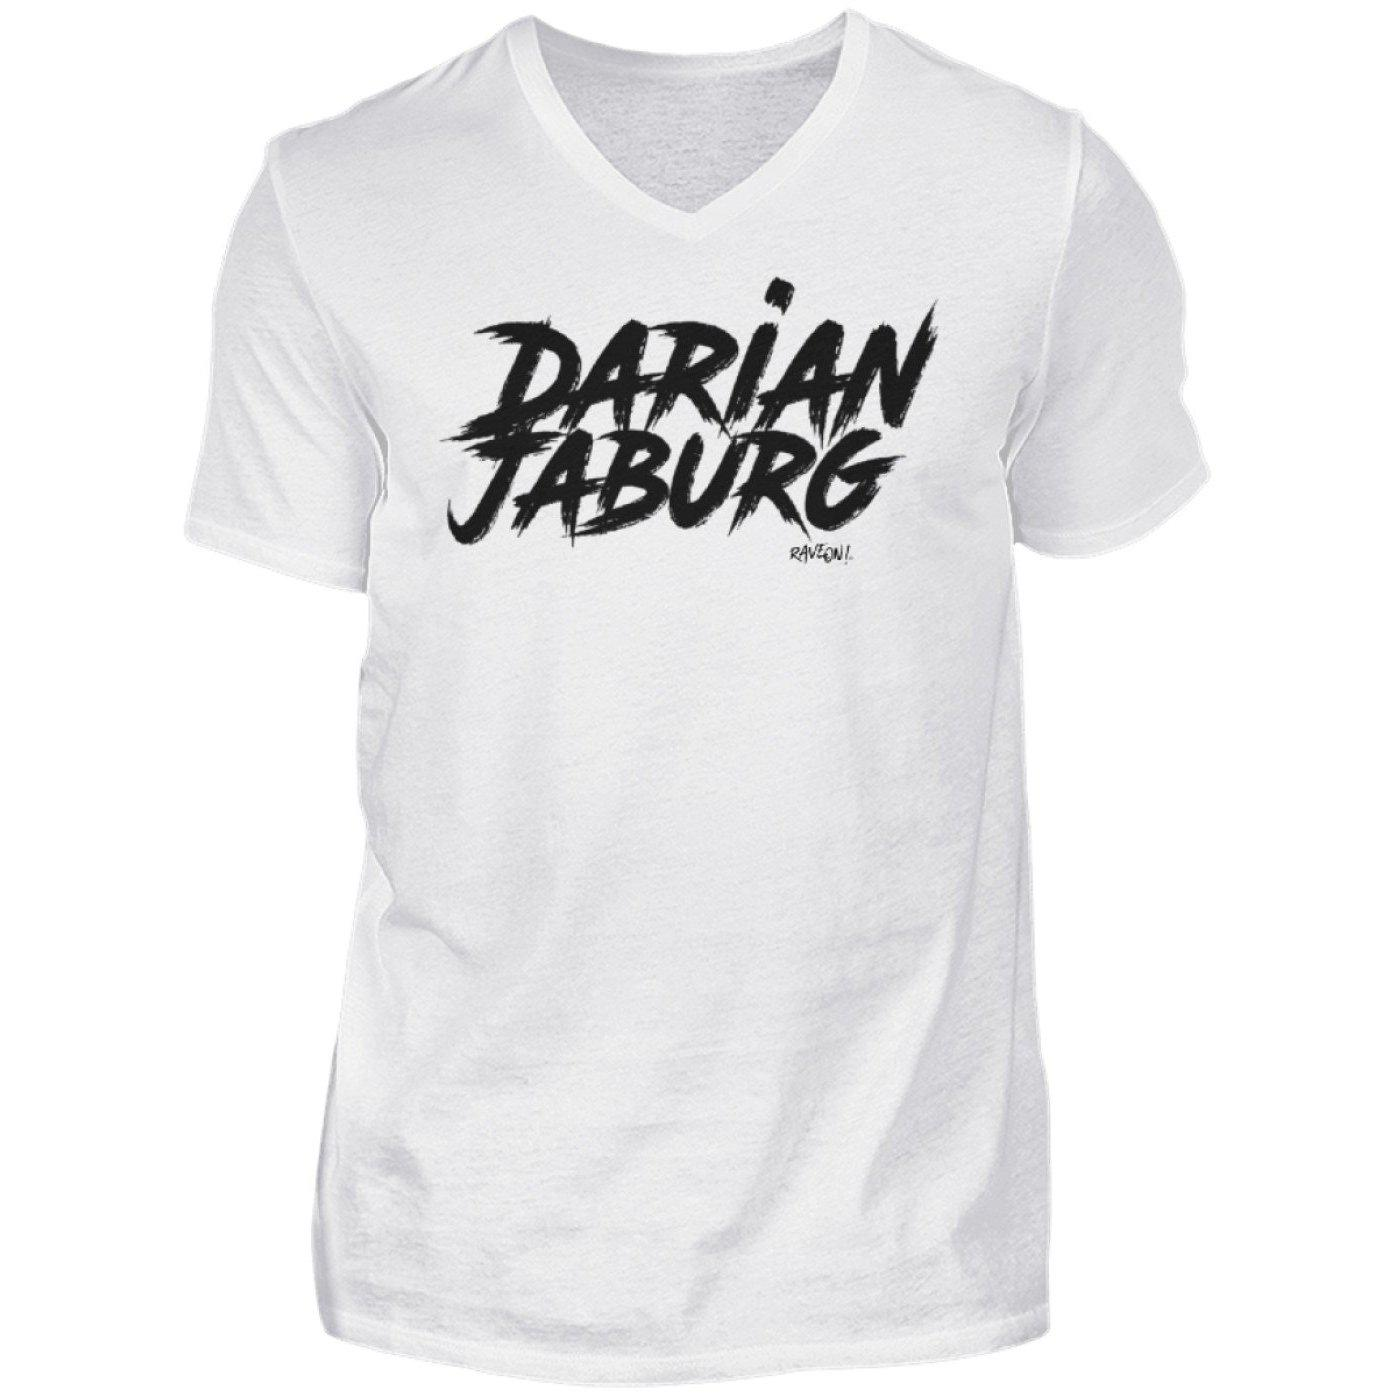 Darian Jaburg - BS Rec.White - Rave On!® - Herren V-Neck Shirt V-Neck Herrenshirt White / S - Rave On!® der Club & Techno Szene Shop für Coole Junge Mode Streetwear Style & Fashion Outfits + Sexy Festival 420 Stuff